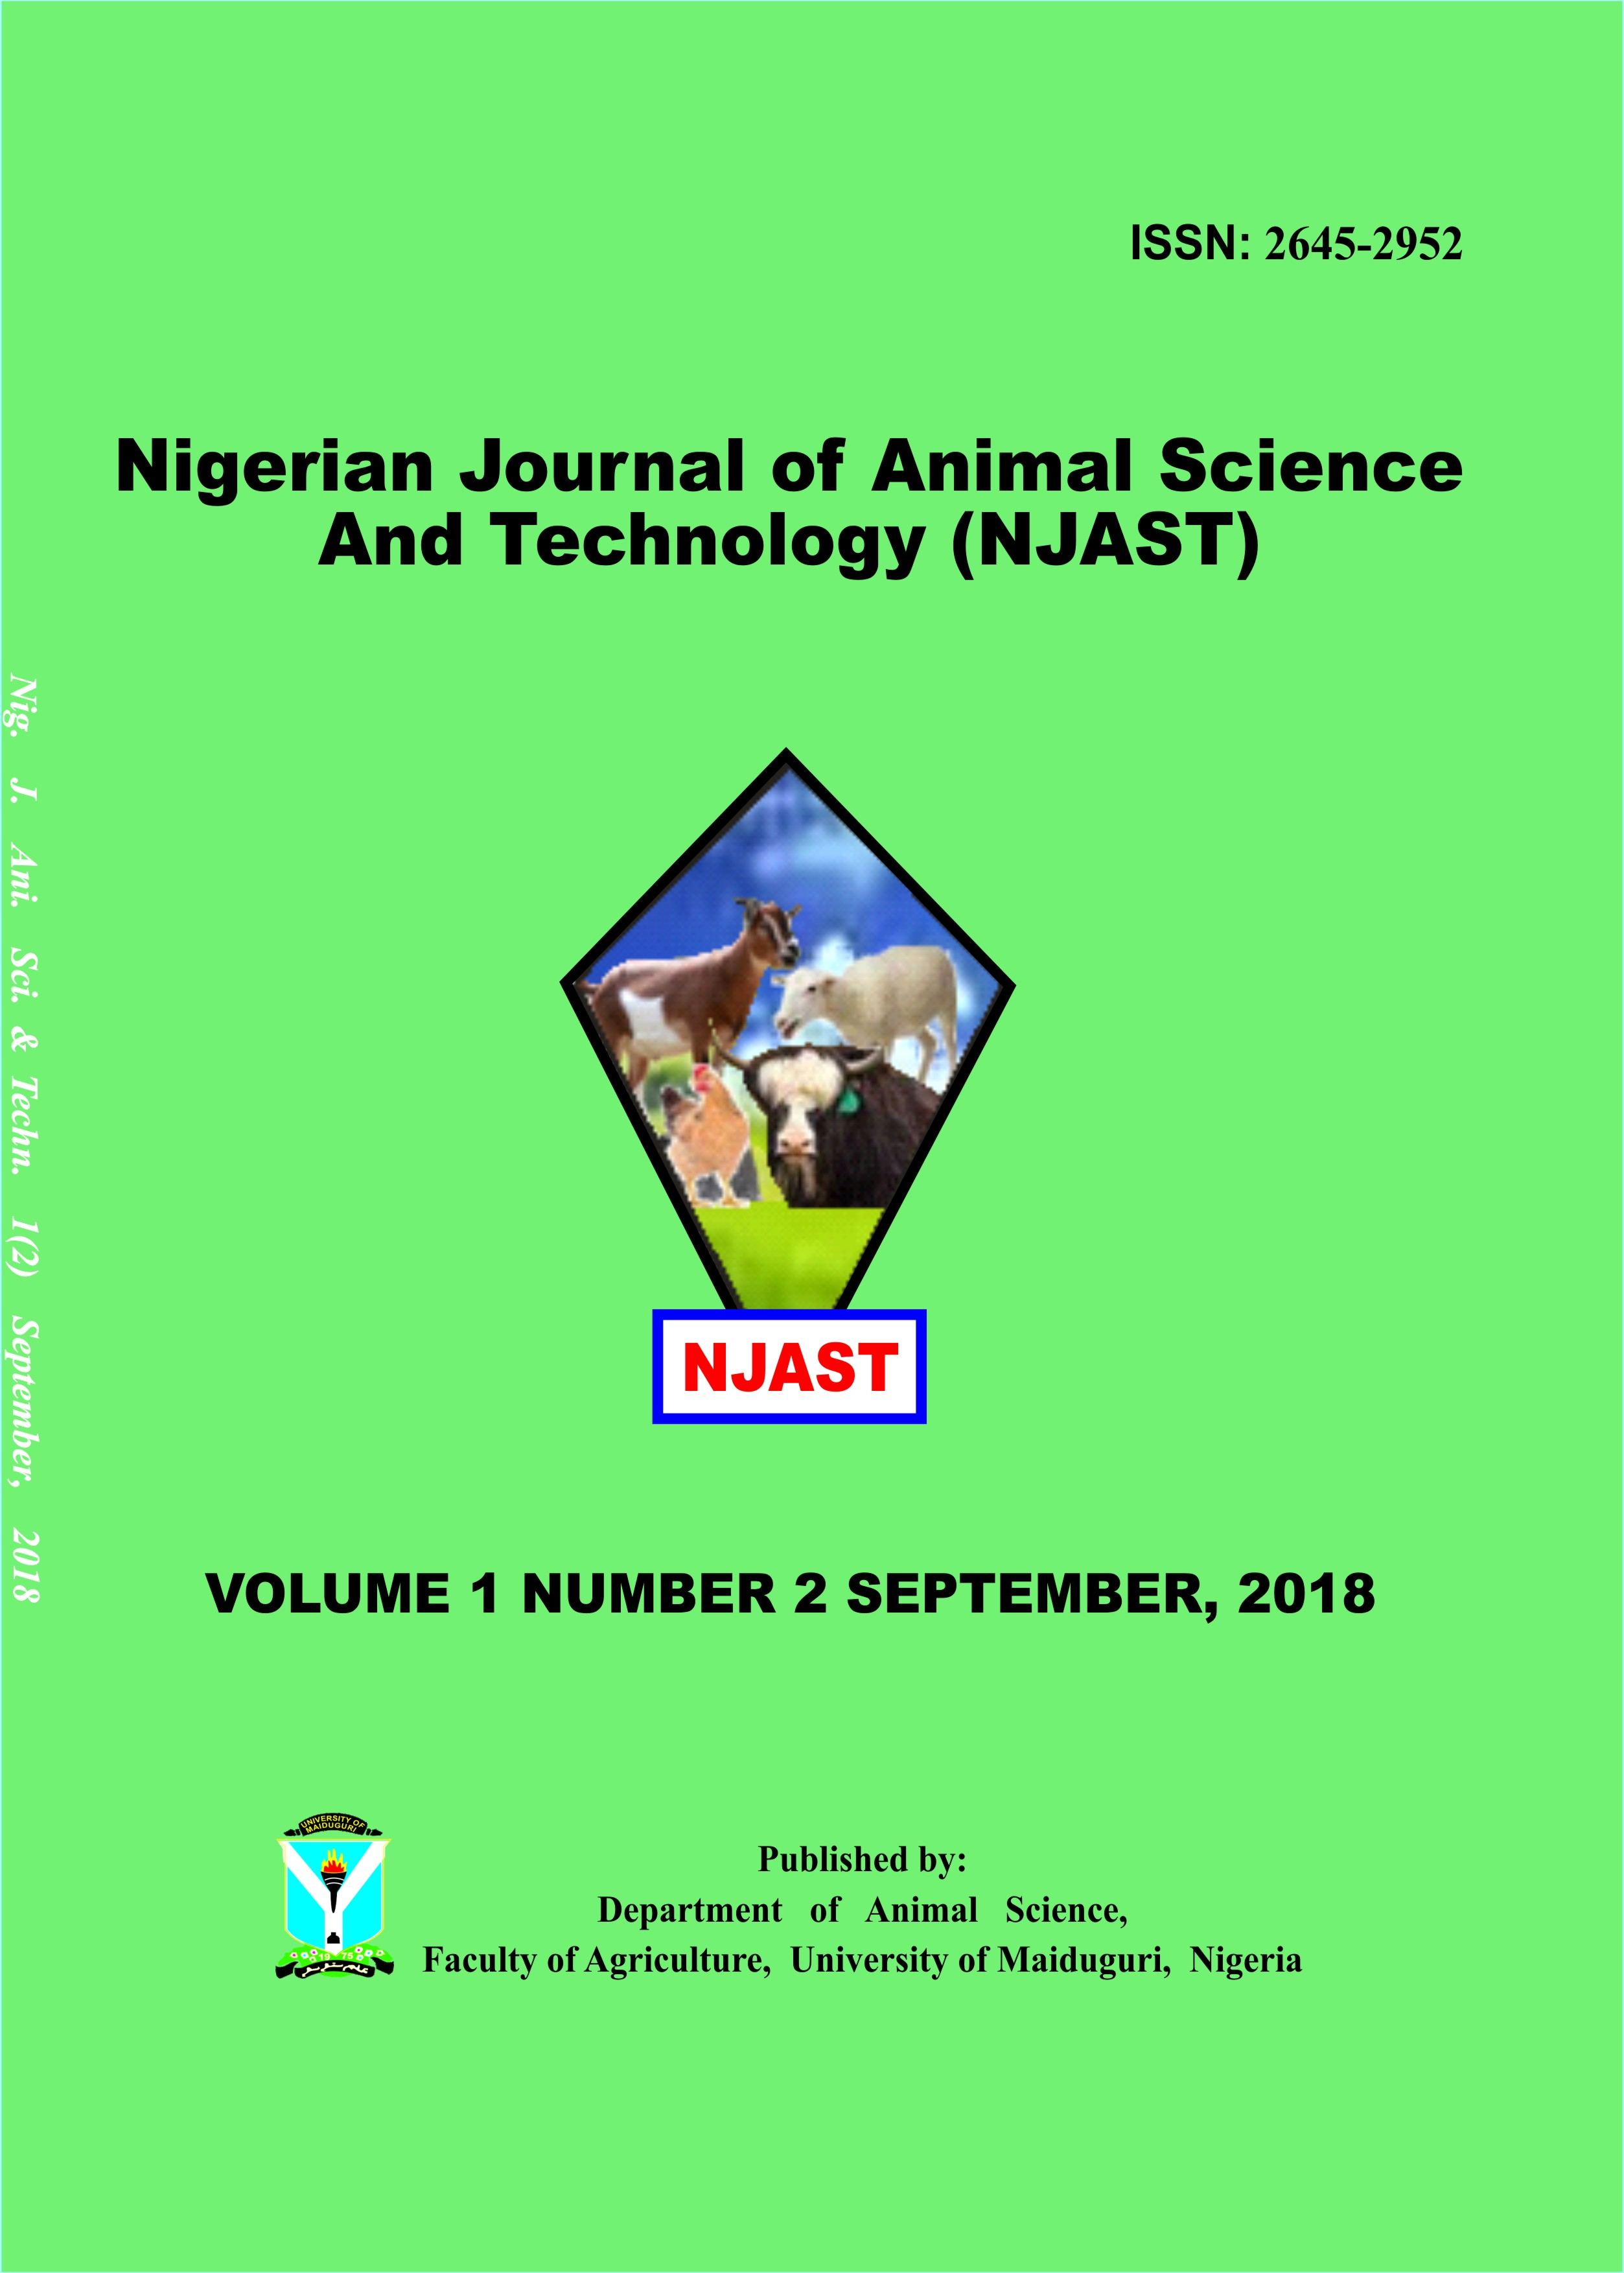 Nigerian Journal of Animal Science and Technology